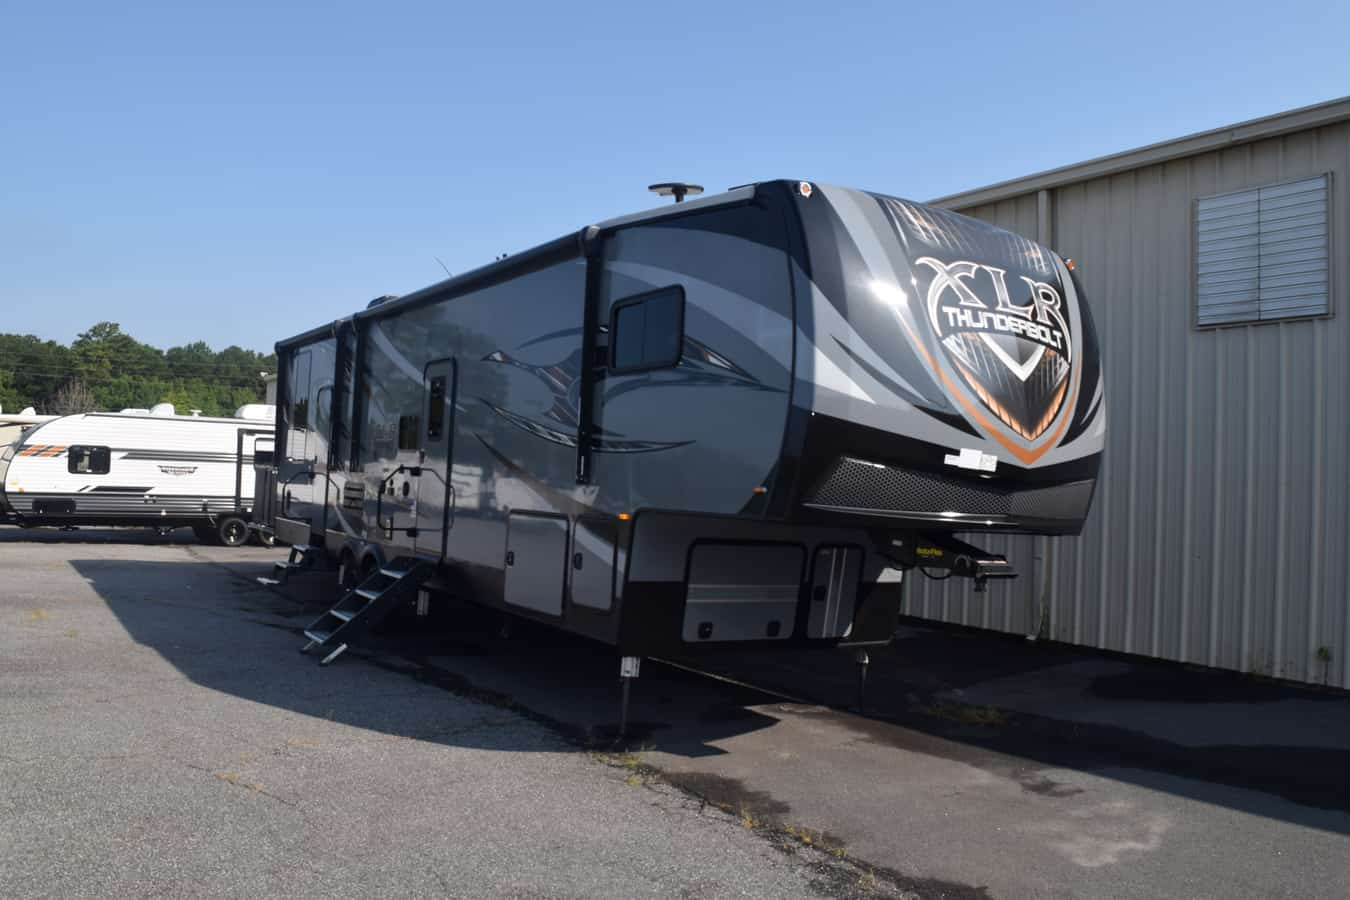 USED 2019 Forest River XLR 340AMP - Three Way Campers